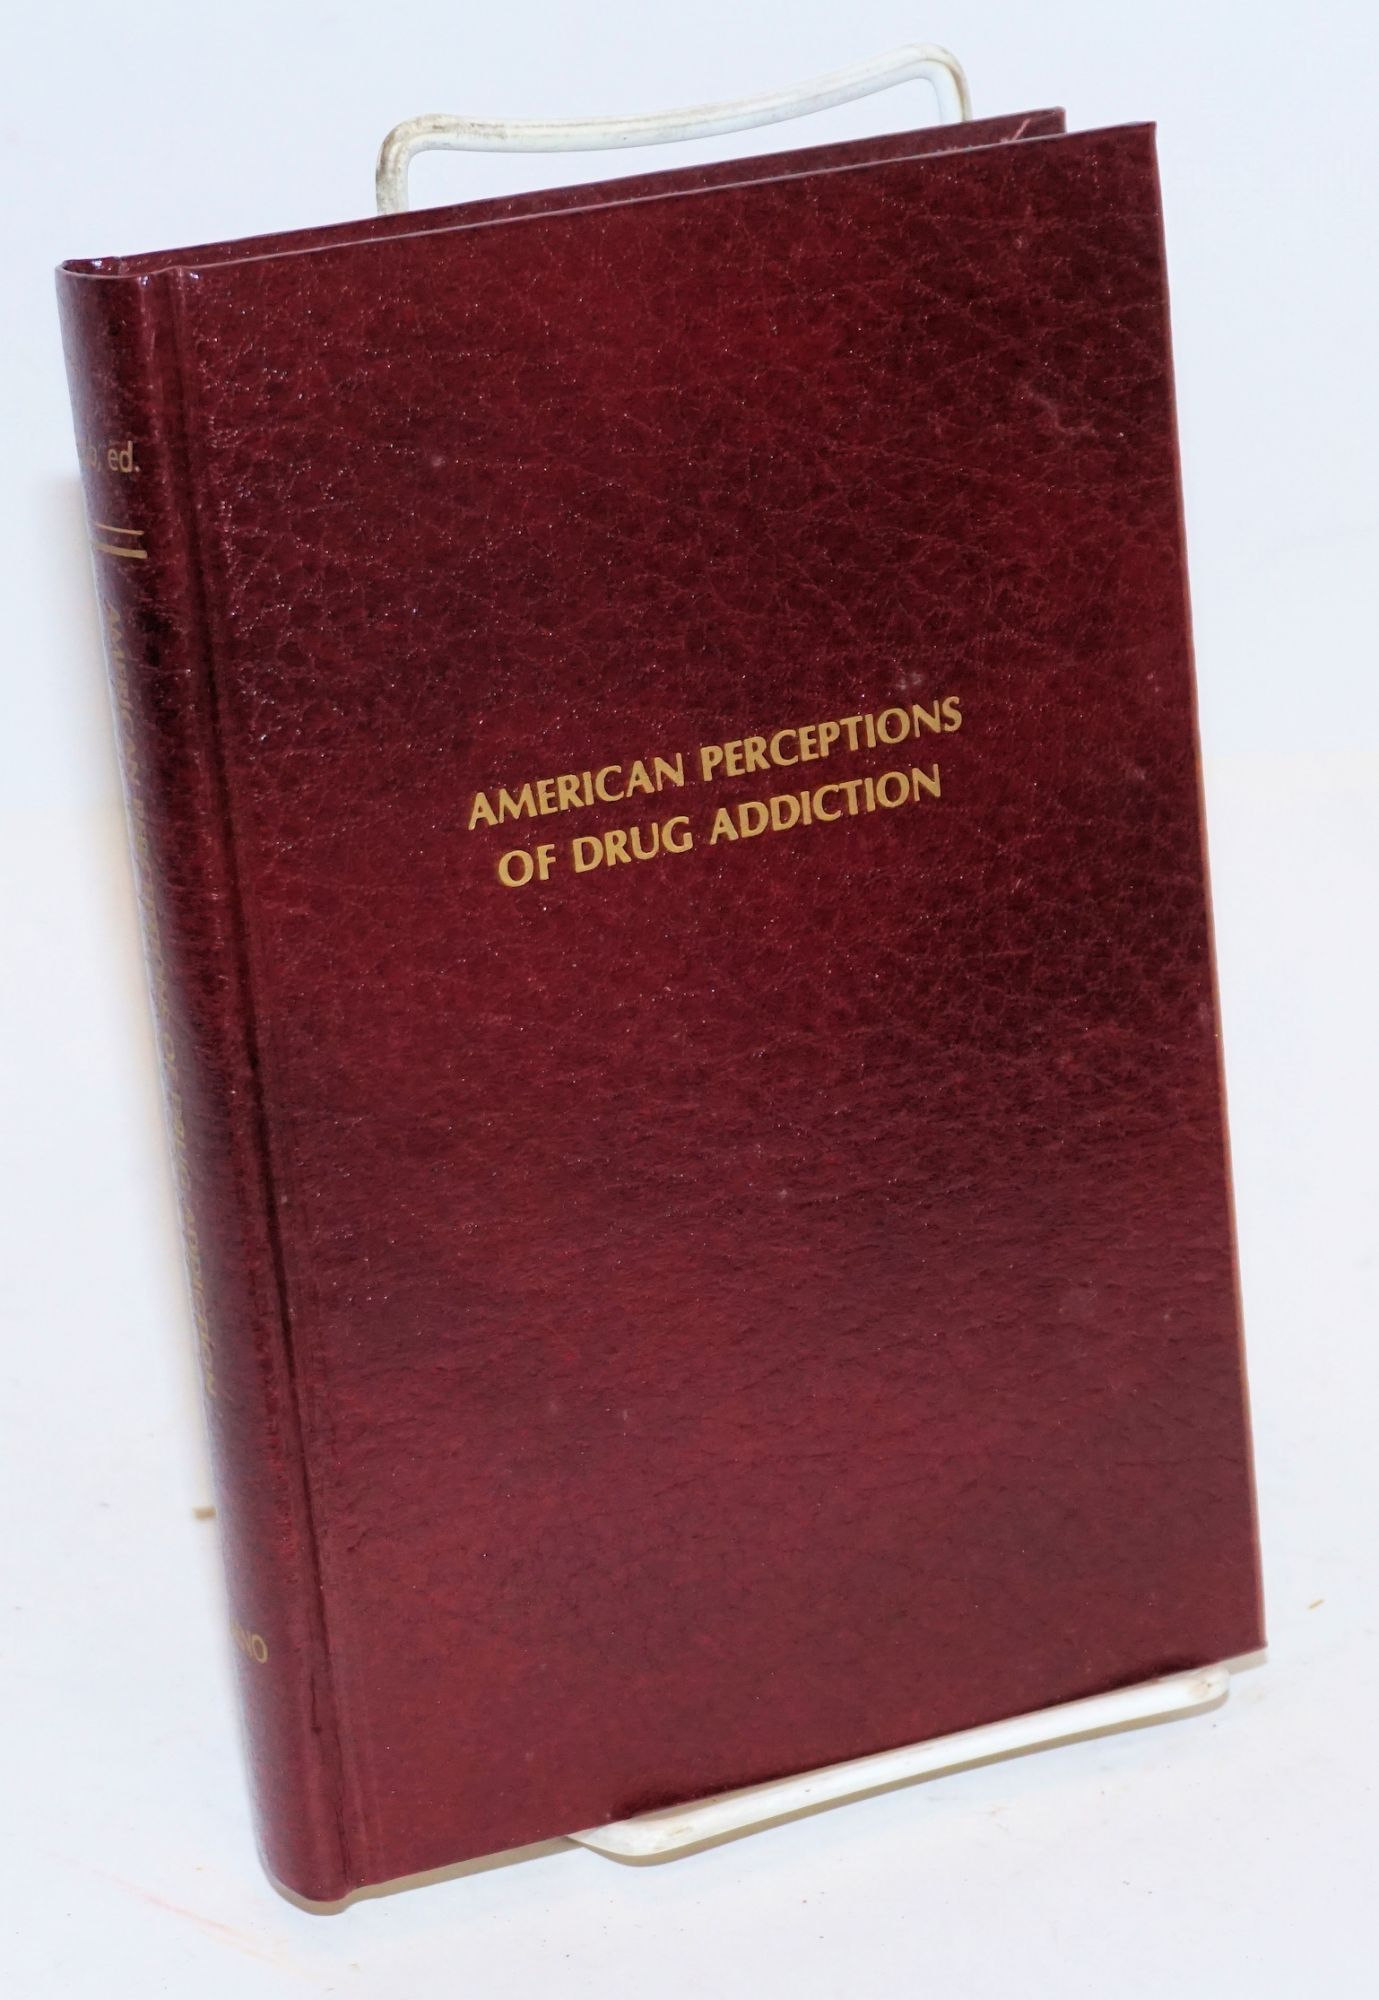 American Perceptions of Drug Addiction: five studies, 1872-1912 by Gerald  N  Grob, F  Baldwin Morris Henry James on Bolerium Books